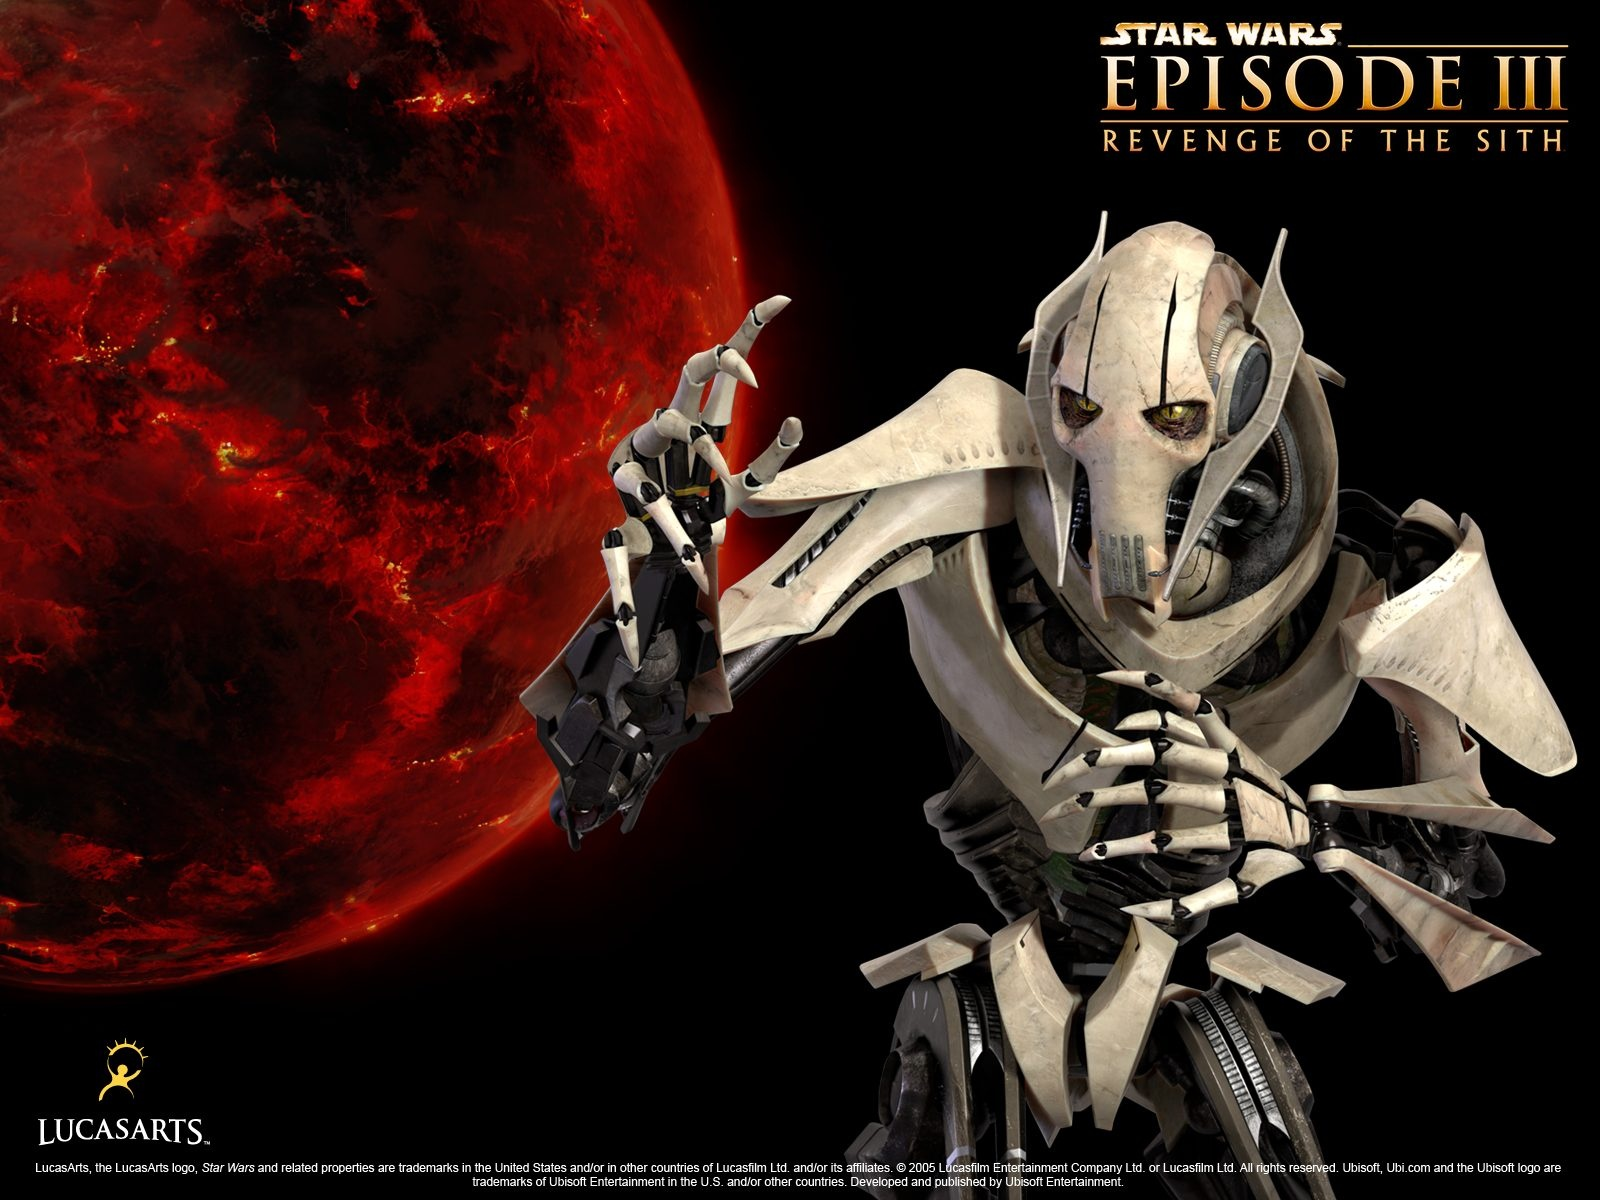 Revenge of the Sith (Ep. III) - General Grievous